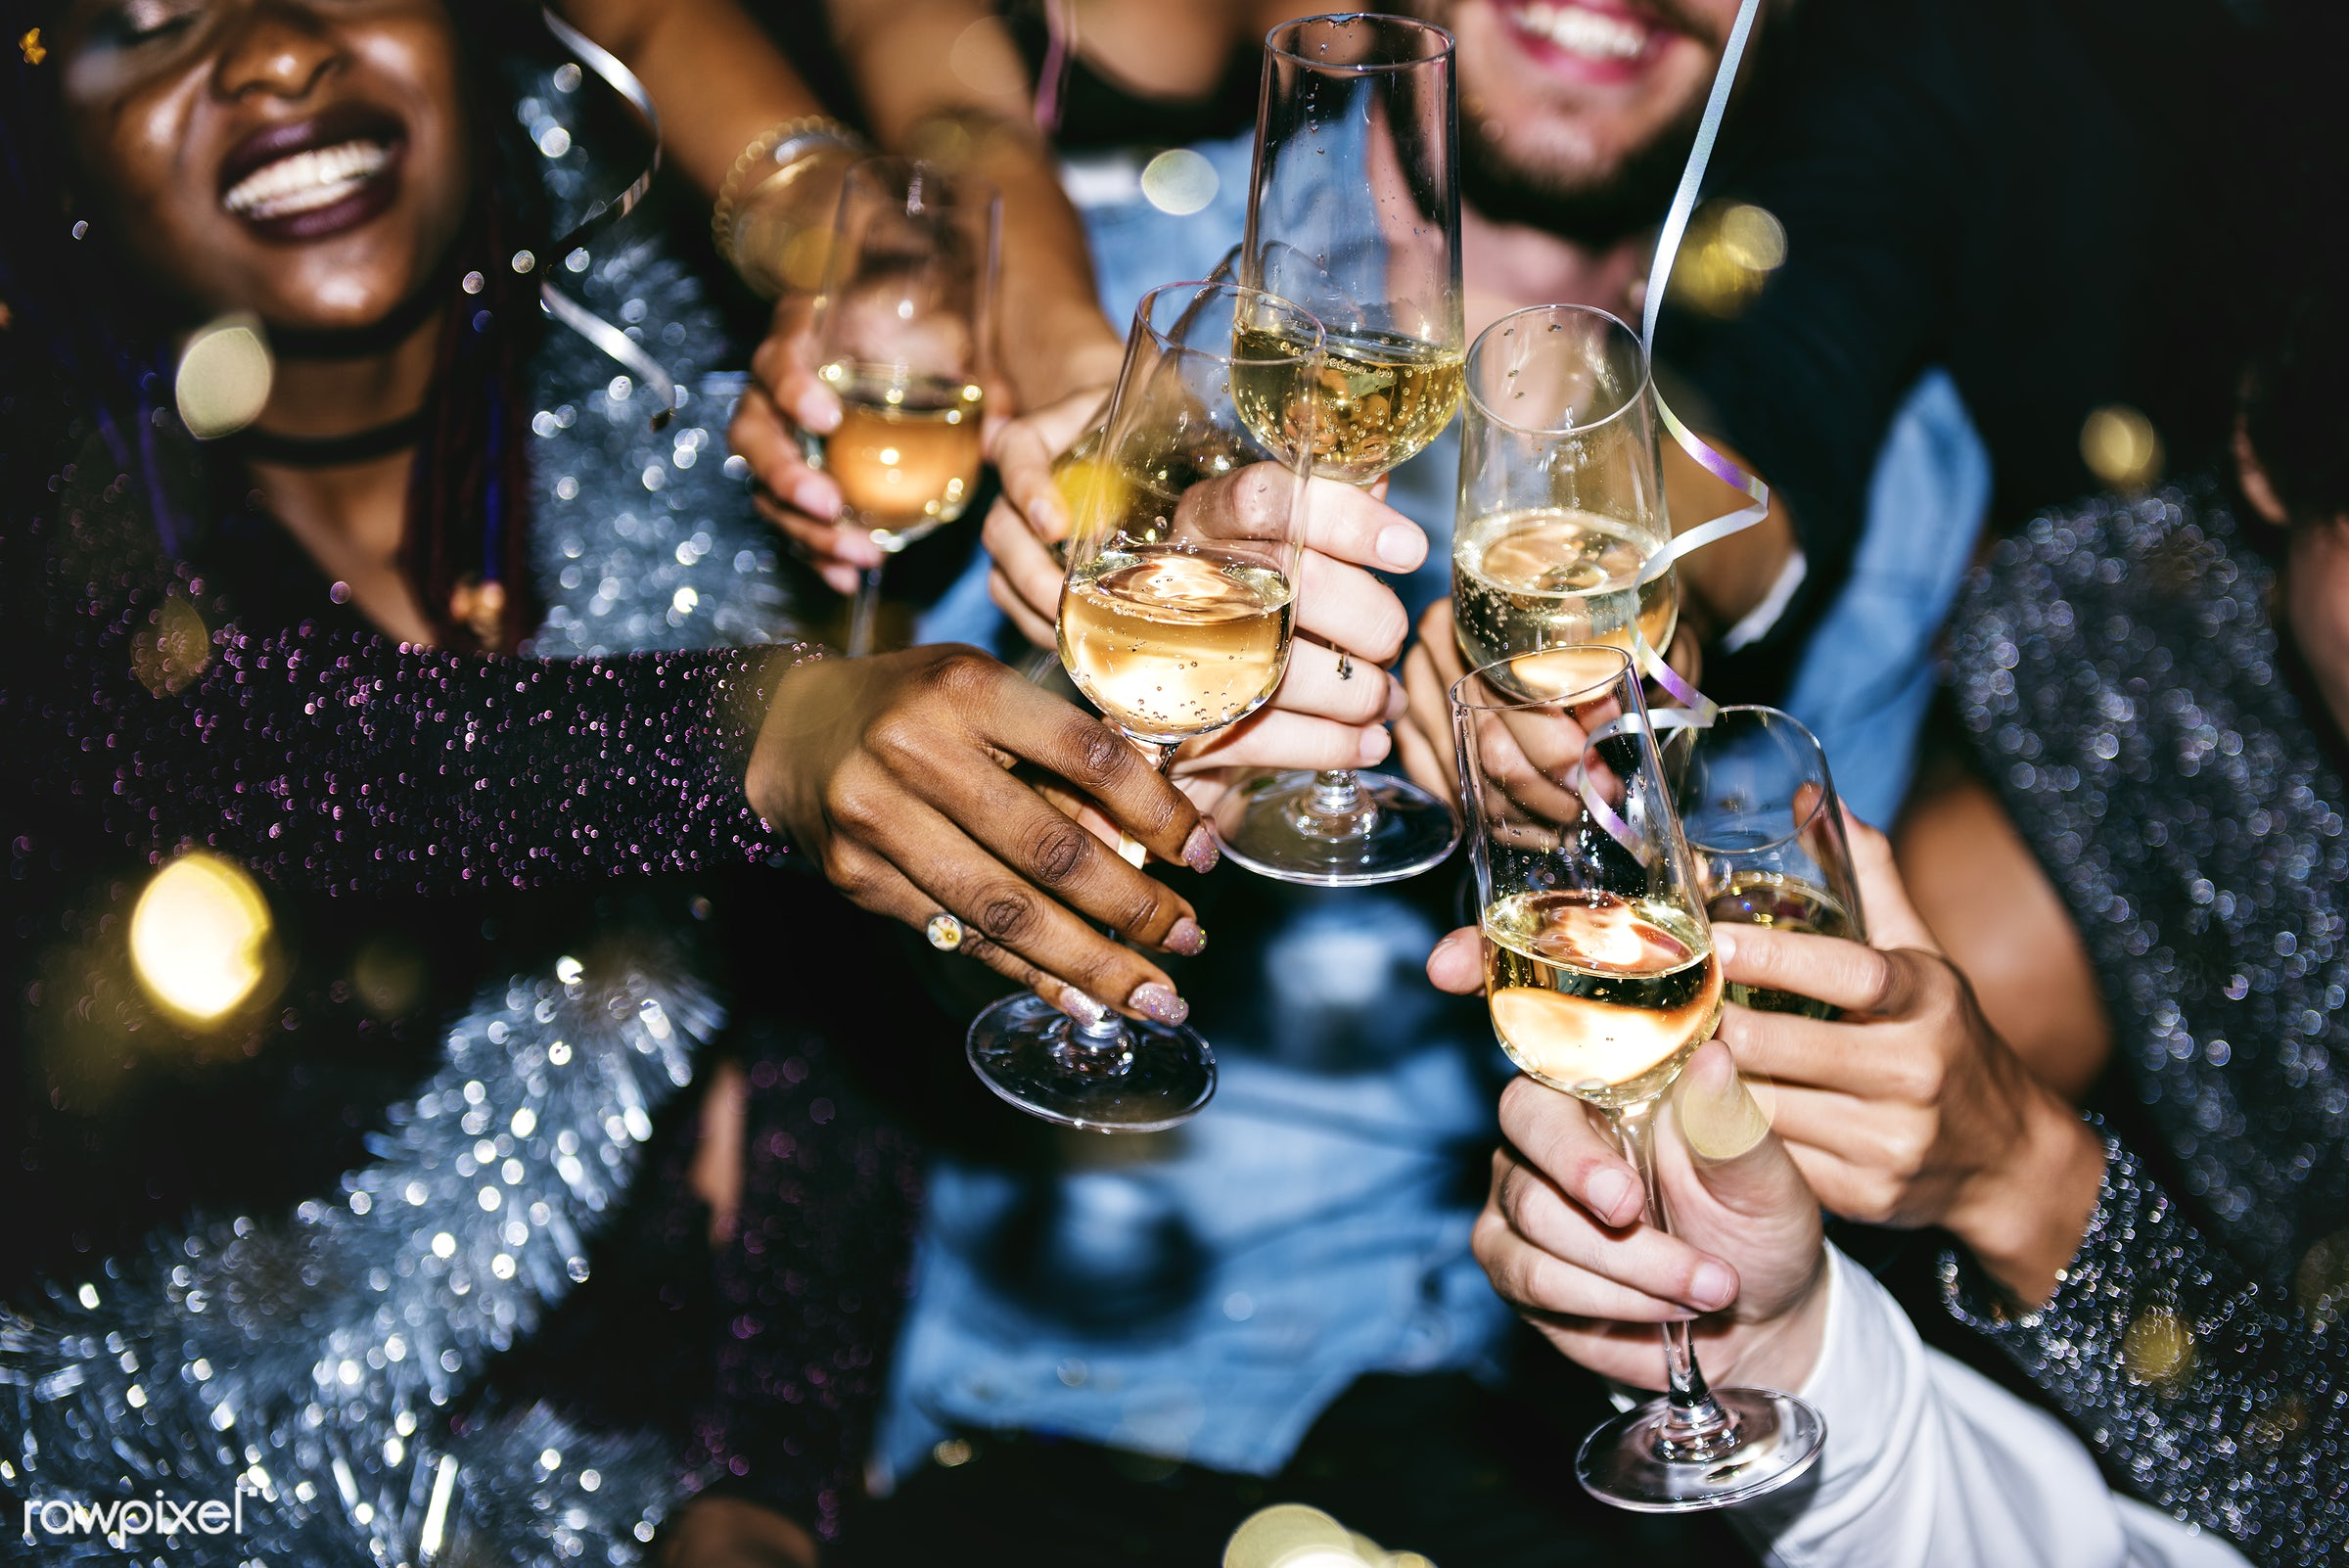 People celebrating in a party - party, new year, champagne, drink, alcohol, birthday, celebrate, celebration, drunk,...